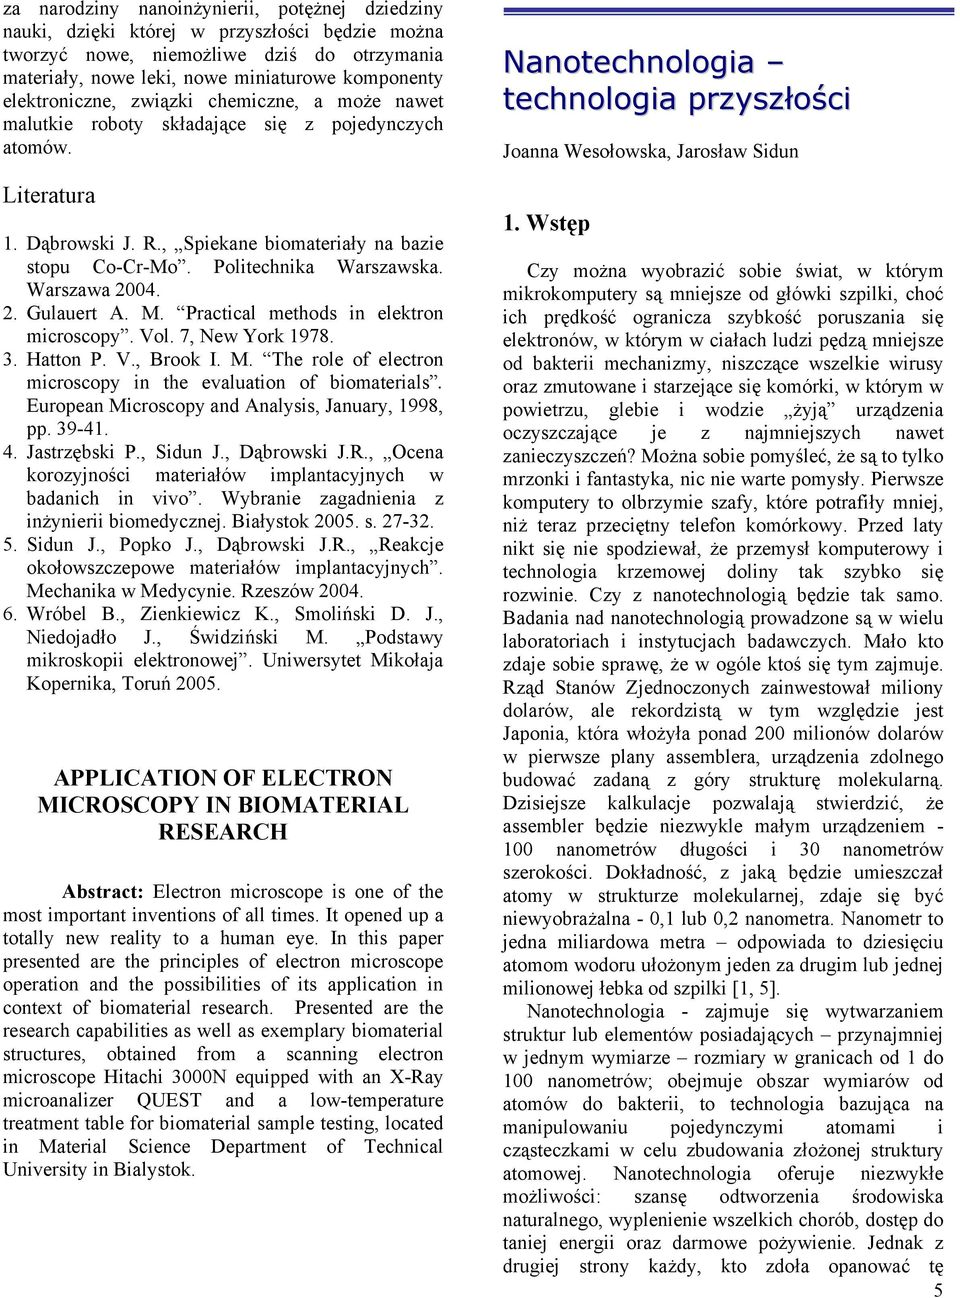 Politechnika Warszawska. Warszawa 2004. 2. Gulauert A. M. Practical methods in elektron microscopy. Vol. 7, New York 1978. 3. Hatton P. V., Brook I. M. The role of electron microscopy in the evaluation of biomaterials.